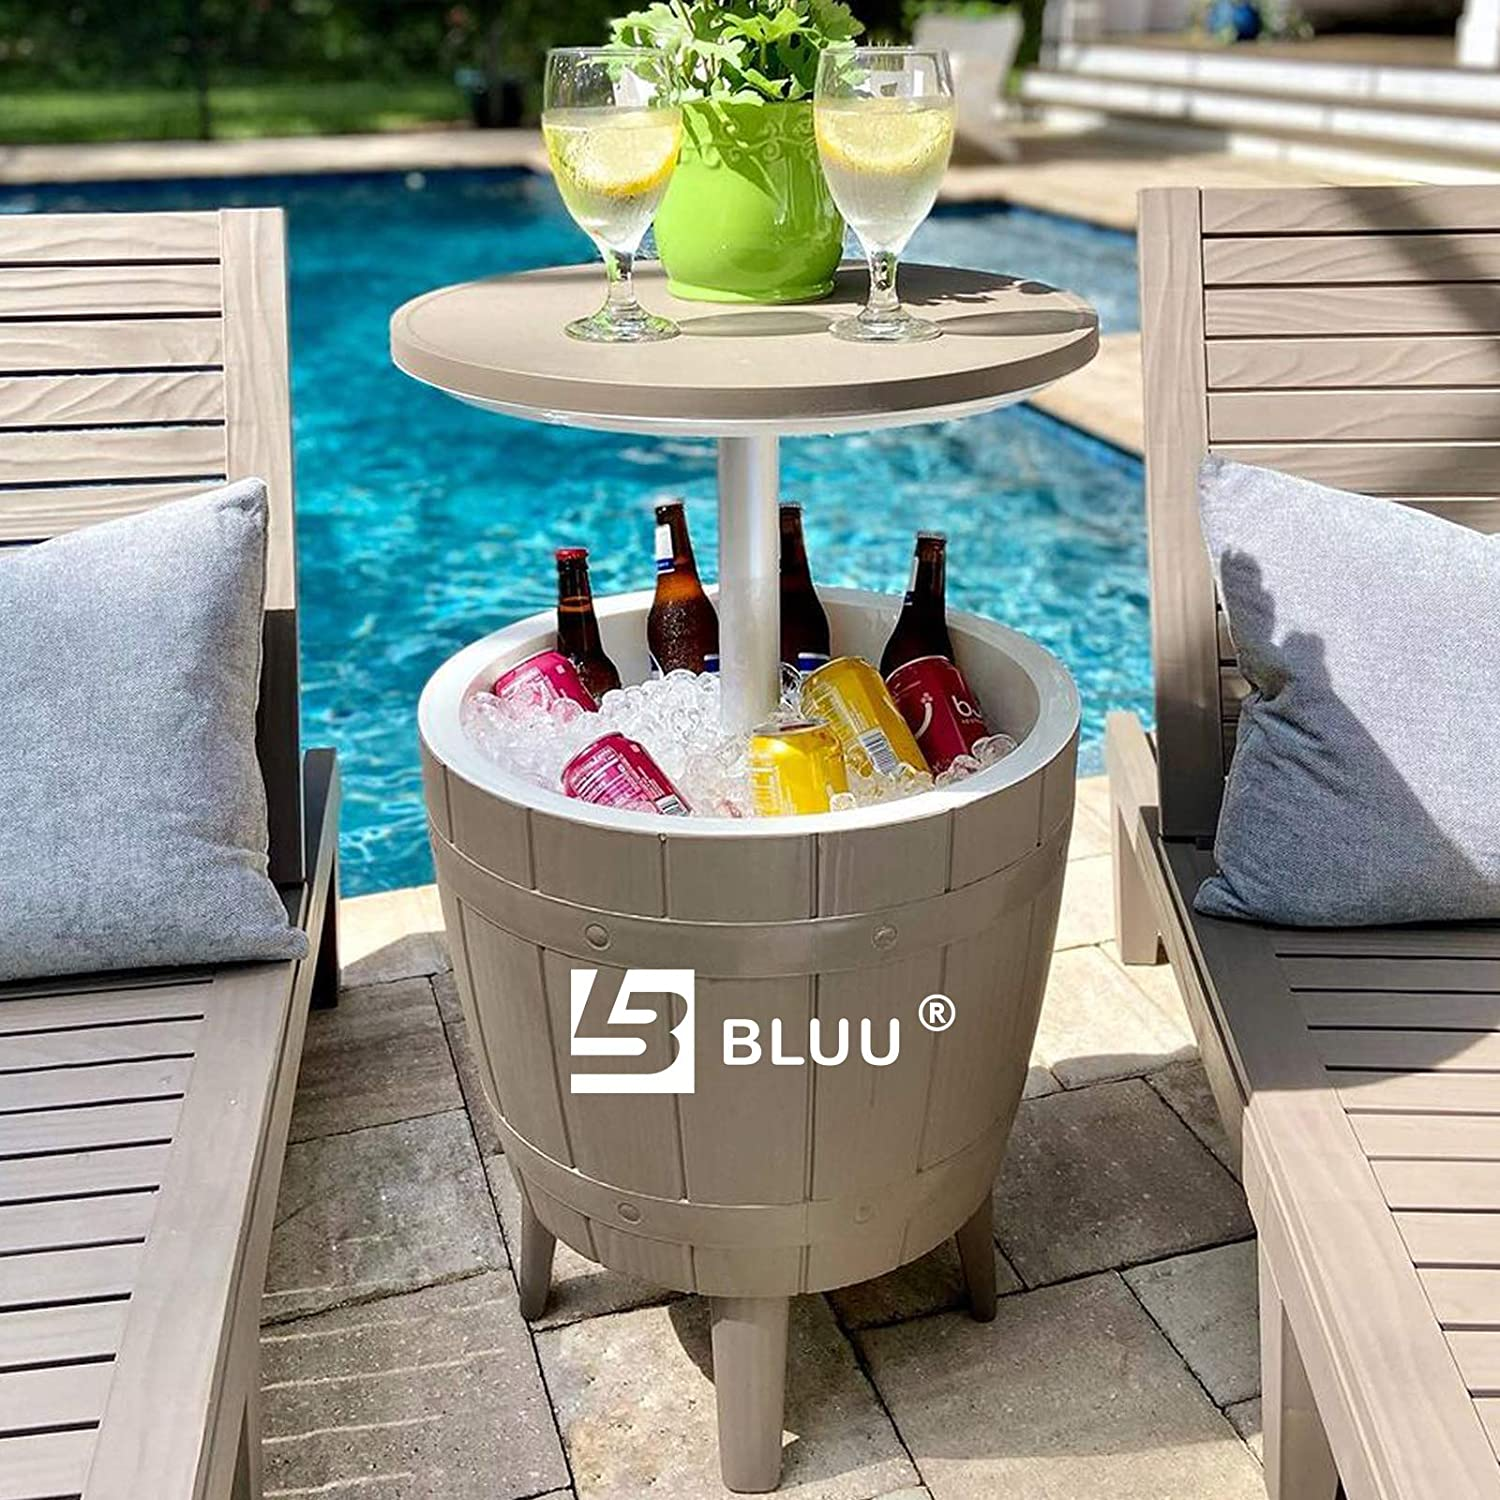 BLUU Outdoor Patio Cooler Bar, Outdoor Patio Furniture and Hot Tub Side Table, Adjustable Height Tables with 10 Gallon Coffee, Beer and Wine Cooler, Waterproof & Steady, Grey